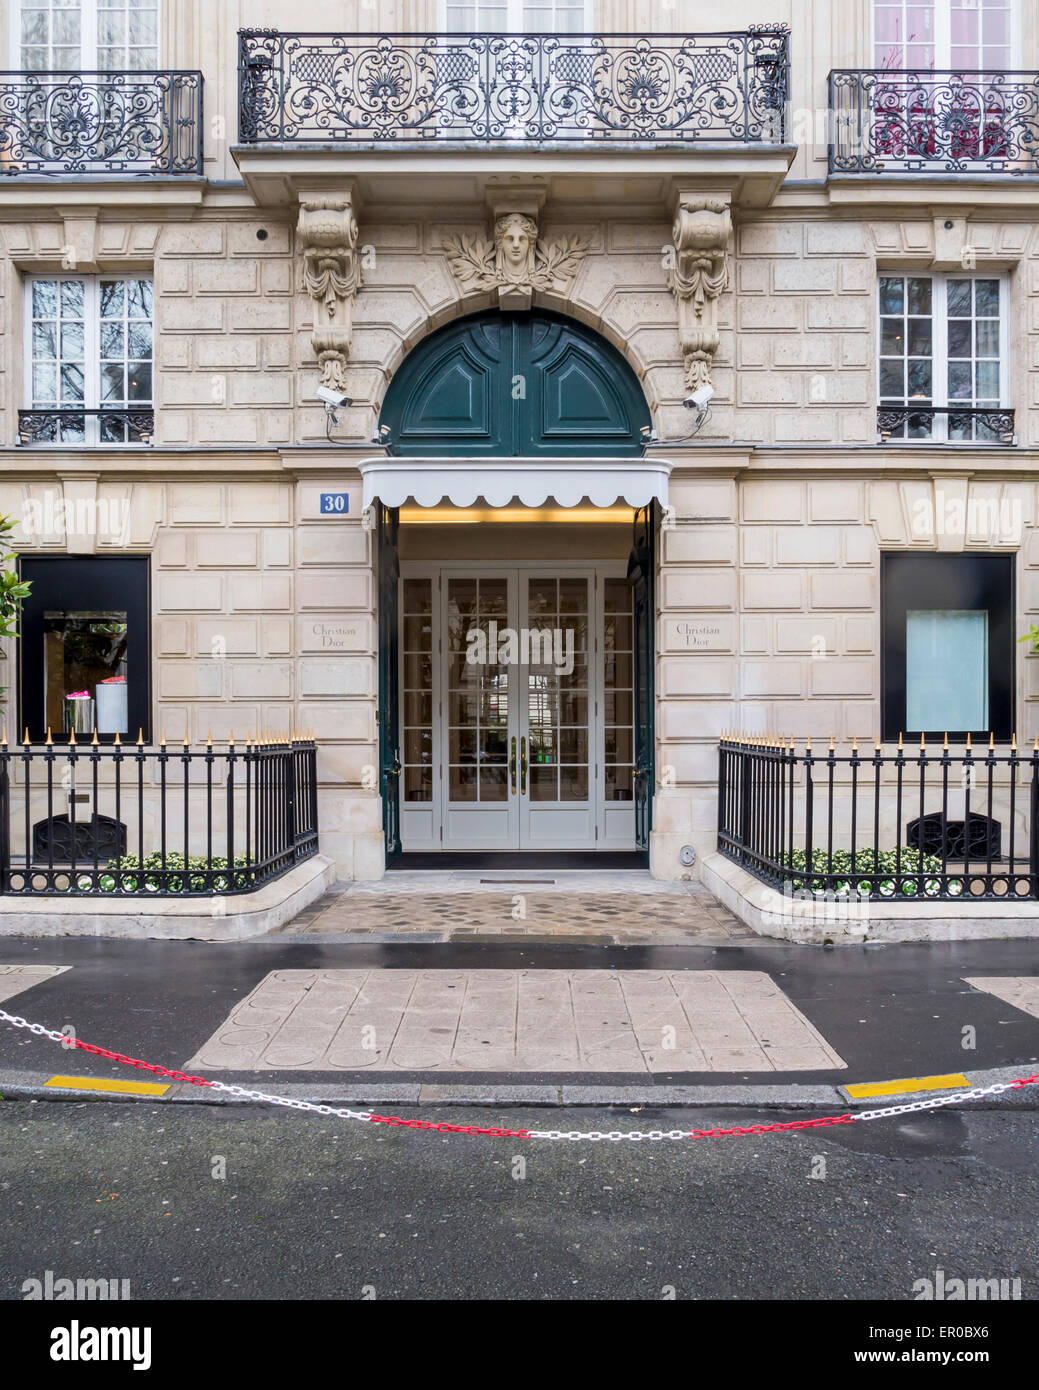 christian dior designer store facade and entrance avenue montaigne stock photo 82987918 alamy. Black Bedroom Furniture Sets. Home Design Ideas